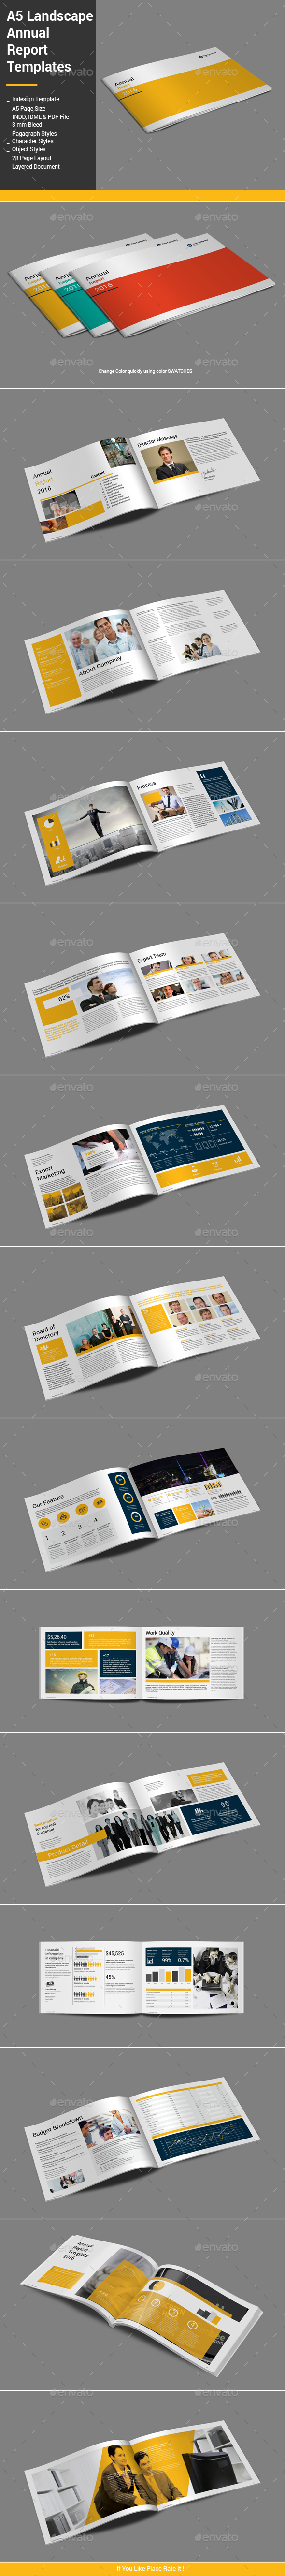 A5 Landscape Annual Report Template - Informational Brochures